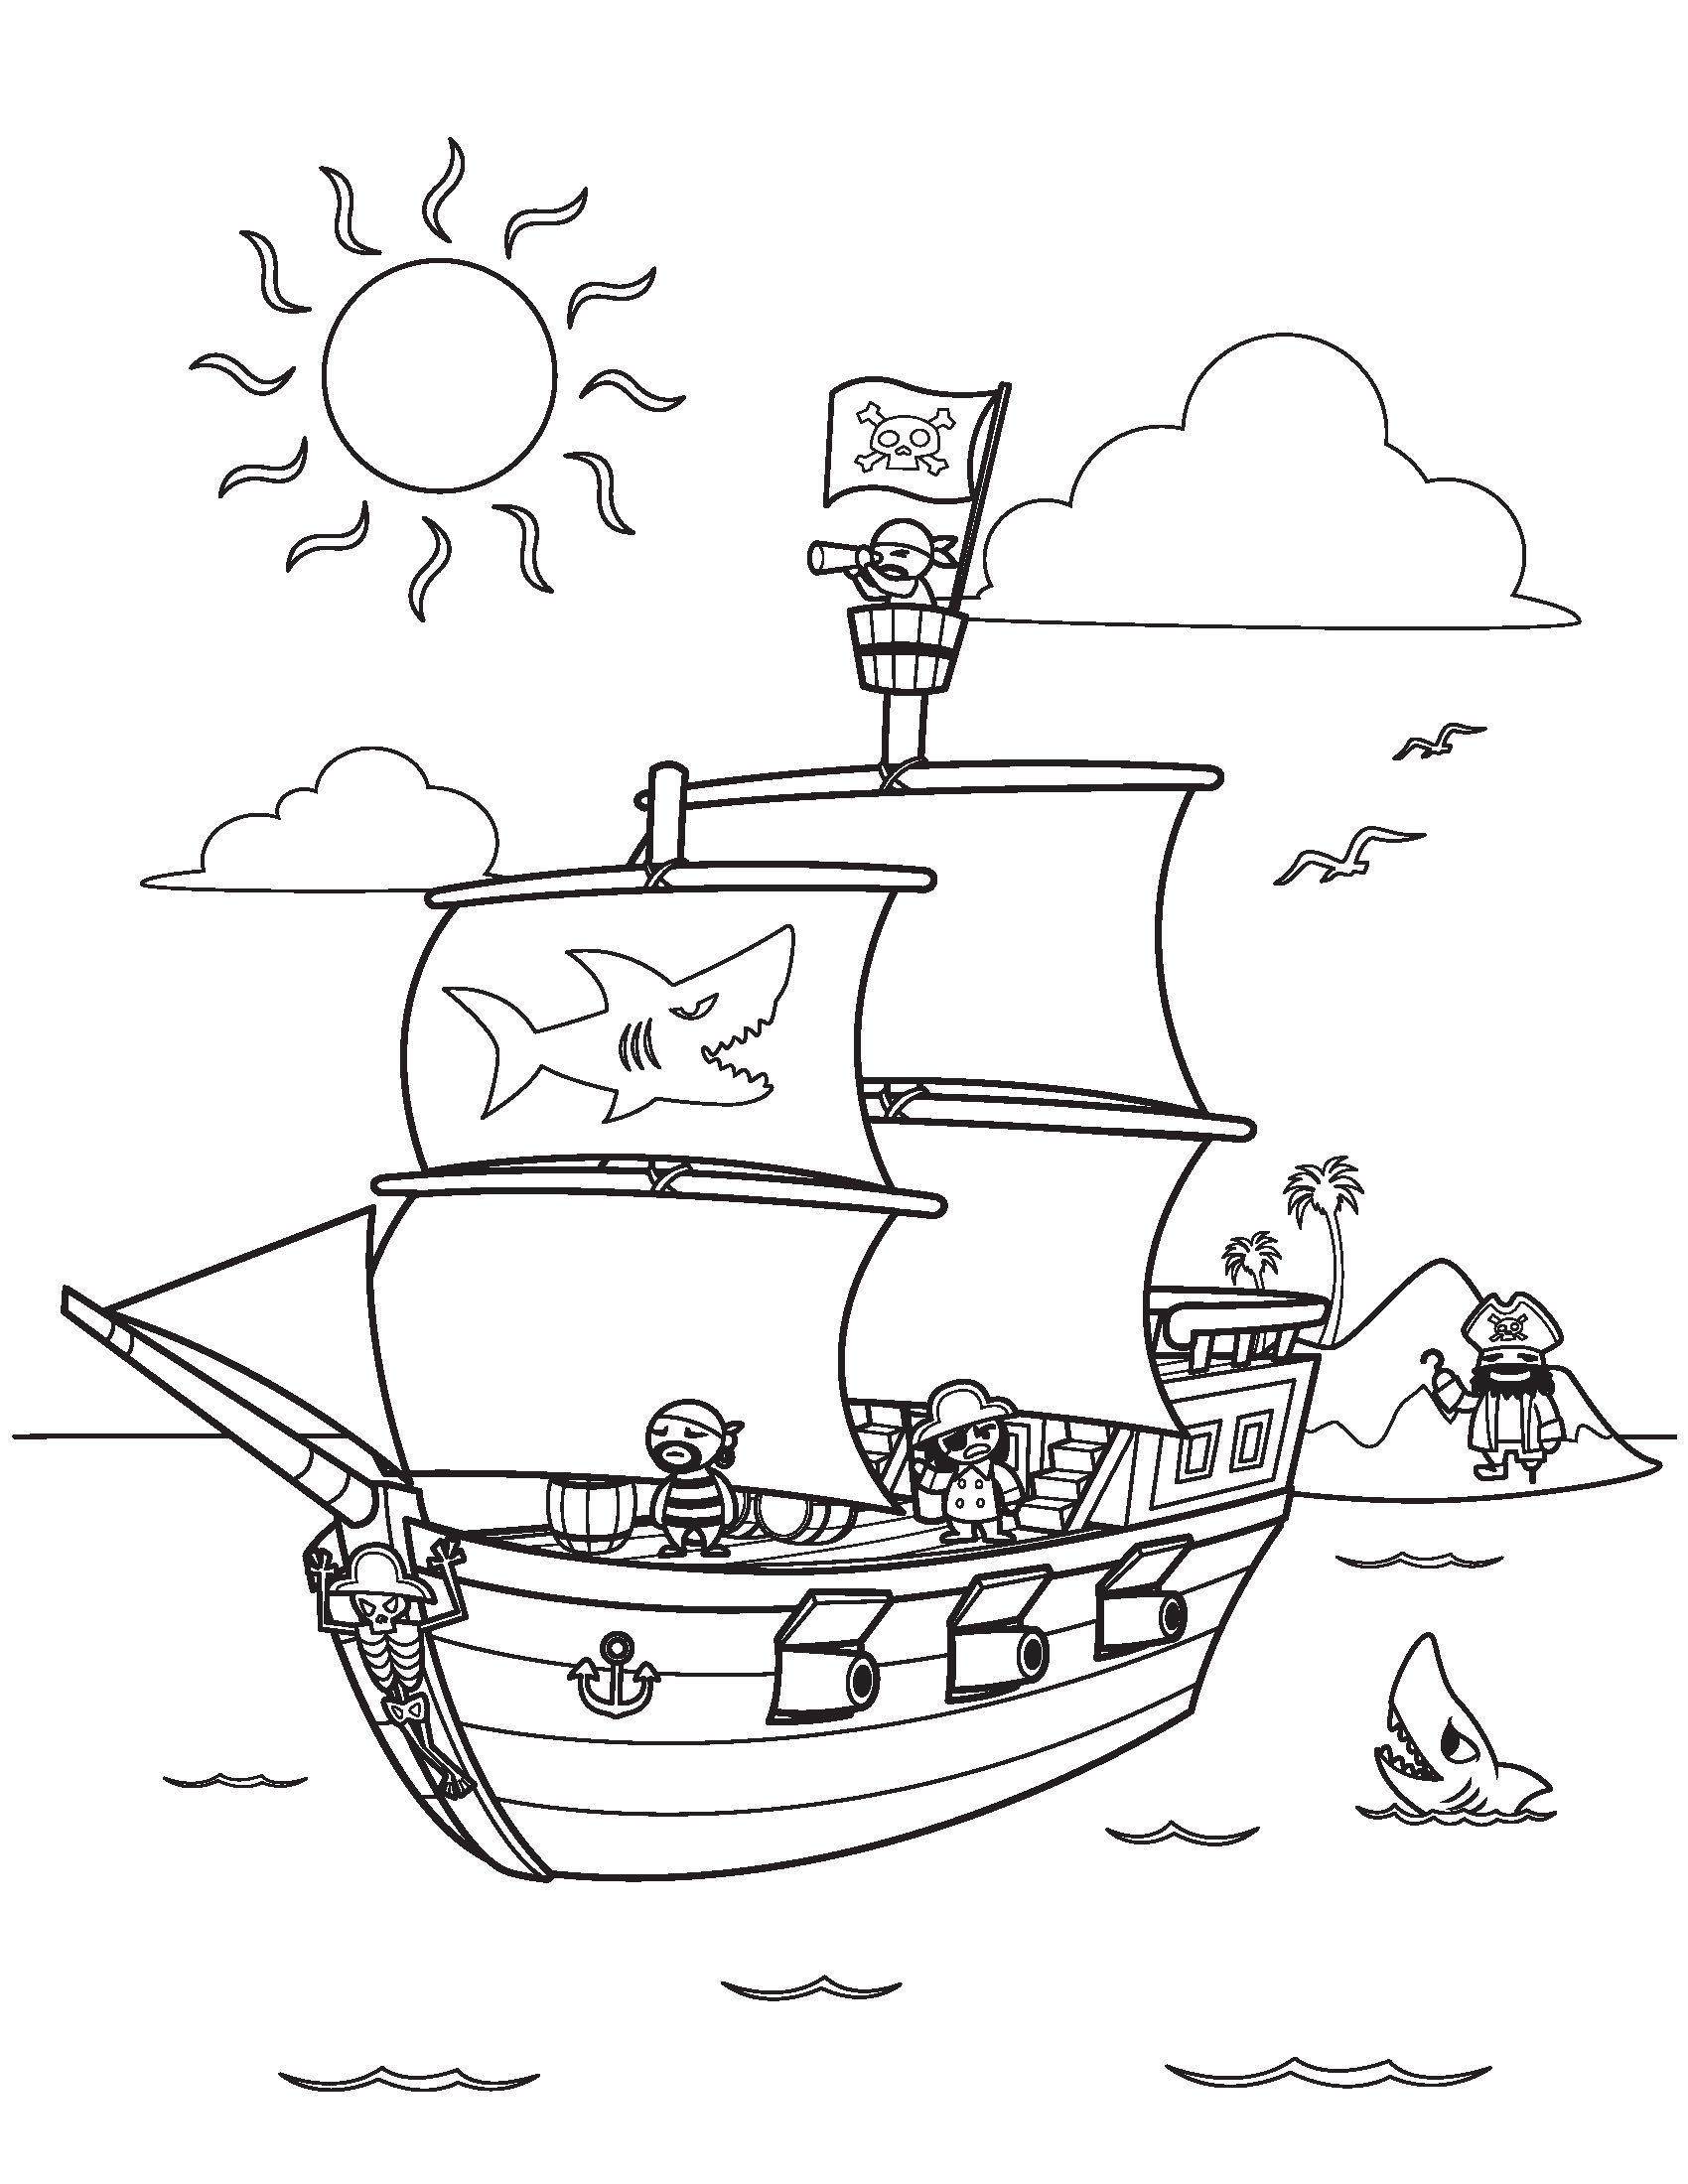 pirate ship coloring pages Pirate Ship Coloring Pages Kidsfreecoloring.| Free Download  pirate ship coloring pages